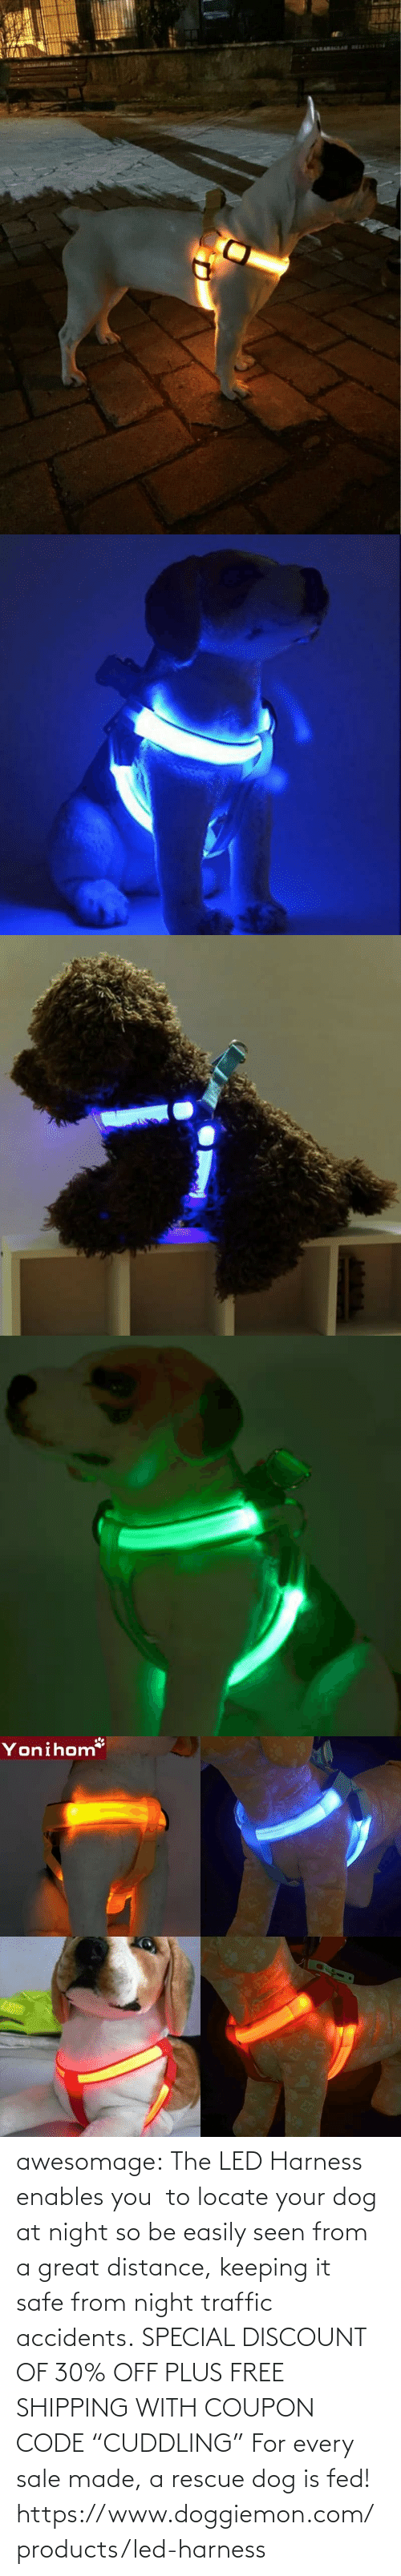 "Every: awesomage:   The LED Harness enables you  to locate your dog at night so be easily seen from a great distance, keeping it safe from night traffic accidents. SPECIAL DISCOUNT OF 30% OFF PLUS FREE SHIPPING WITH COUPON CODE ""CUDDLING"" For every sale made, a rescue dog is fed!   https://www.doggiemon.com/products/led-harness"